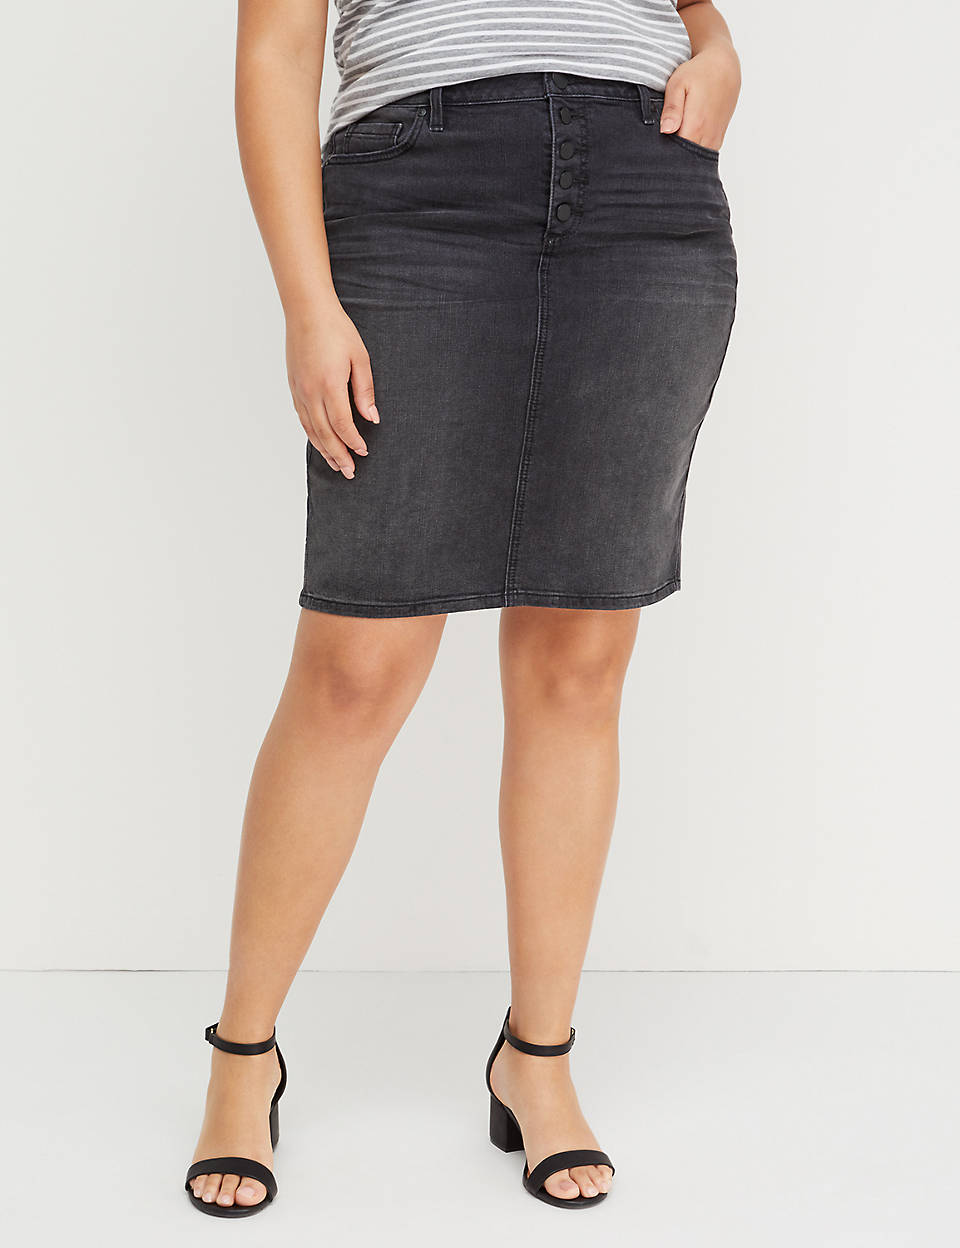 129289d377271 Washed Black Denim Skirt - Exposed Button Fly | Lane Bryant